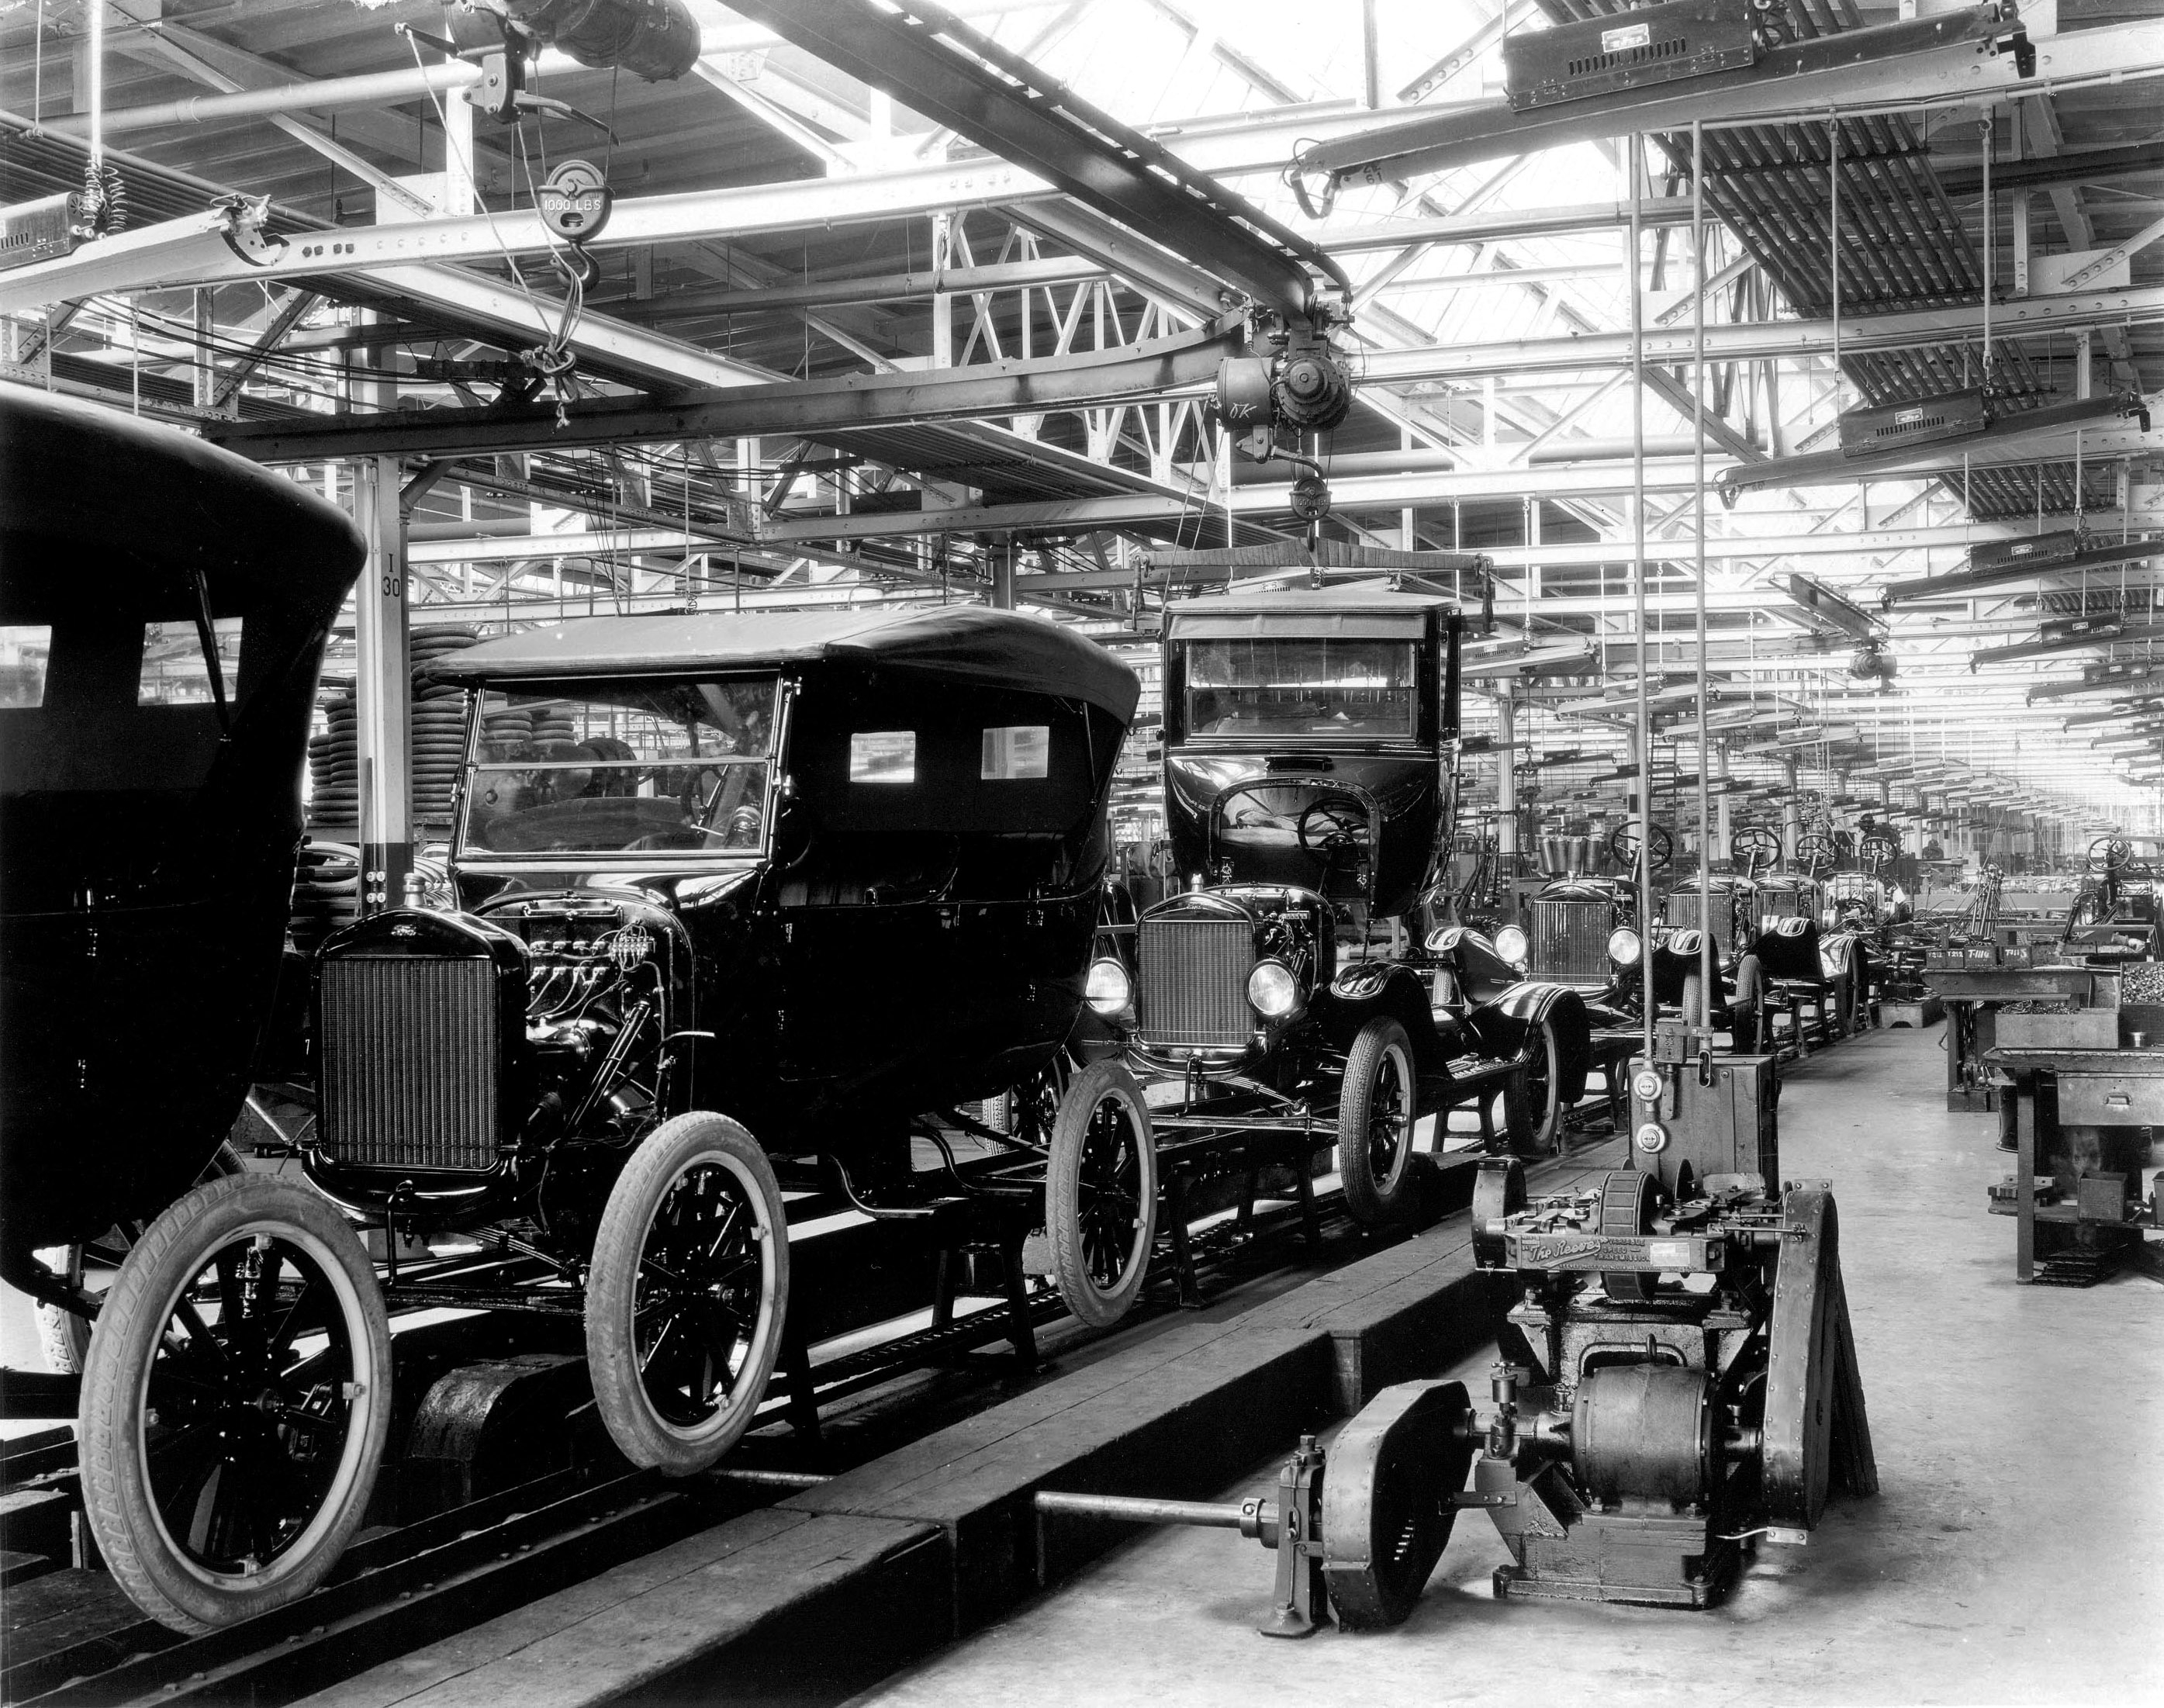 1924 Model T Assembly Line: The 10 millionth Model T was produced on June 4, 1927. From the collections of The Henry Ford and Ford Motor Company (04/22/08)